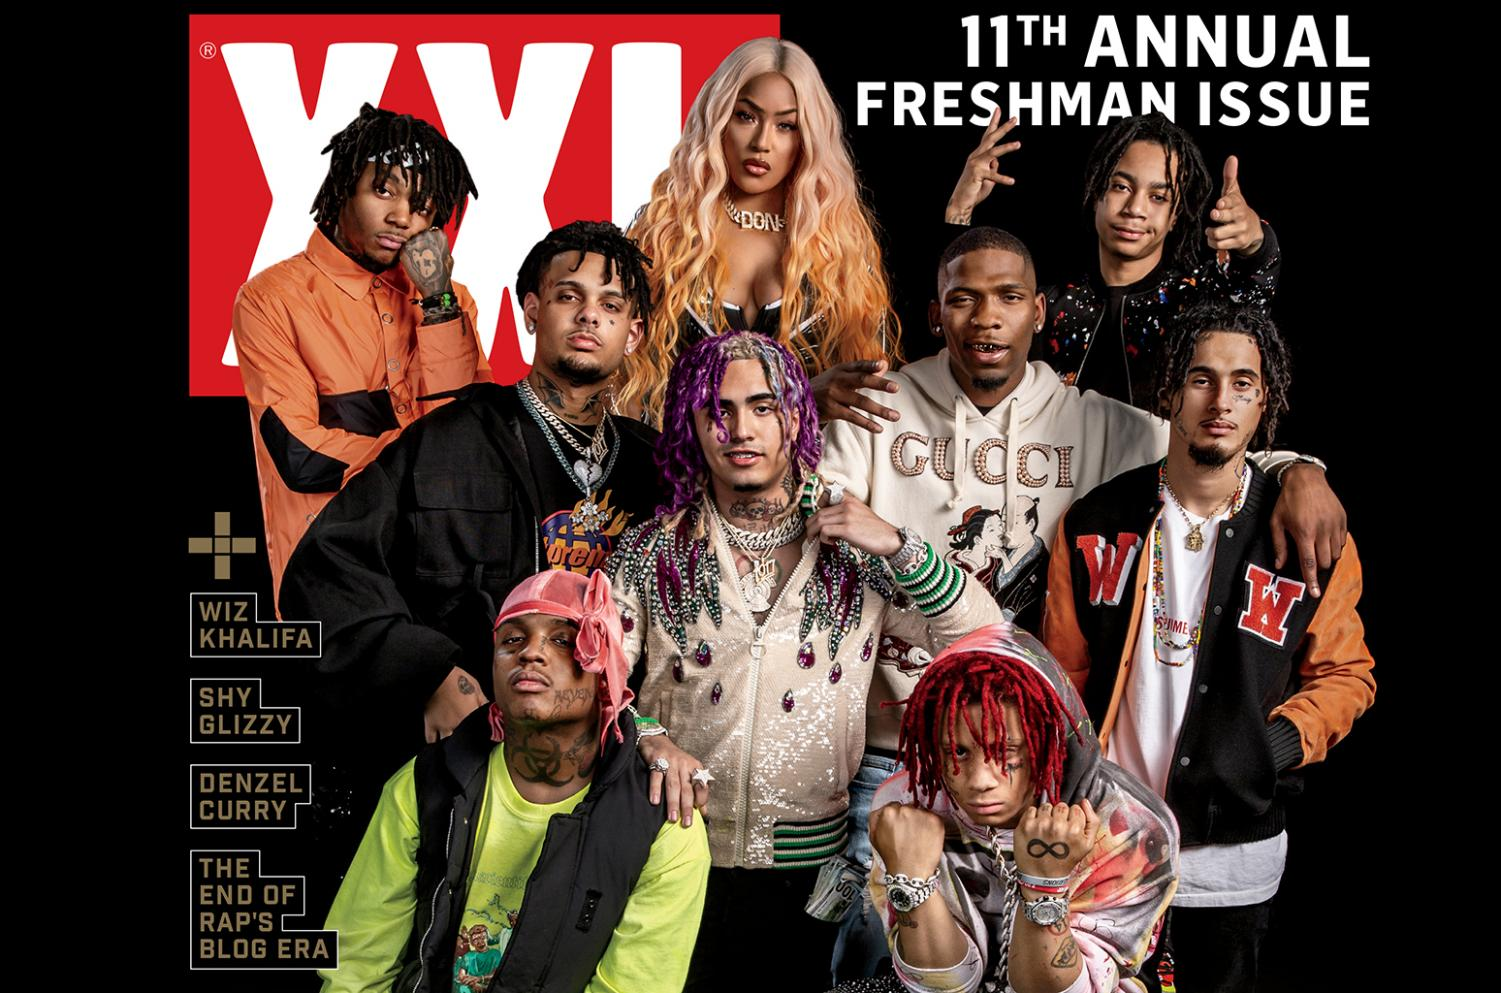 XXL's Freshman class of 2018 featured Ski Mask The Slump God, Lil Pump, Smokepurpp, J.I.D, Stefflon Don, BlocBoy JB, YBN Nahmir, Wifisfuneral, and Trippie Redd.